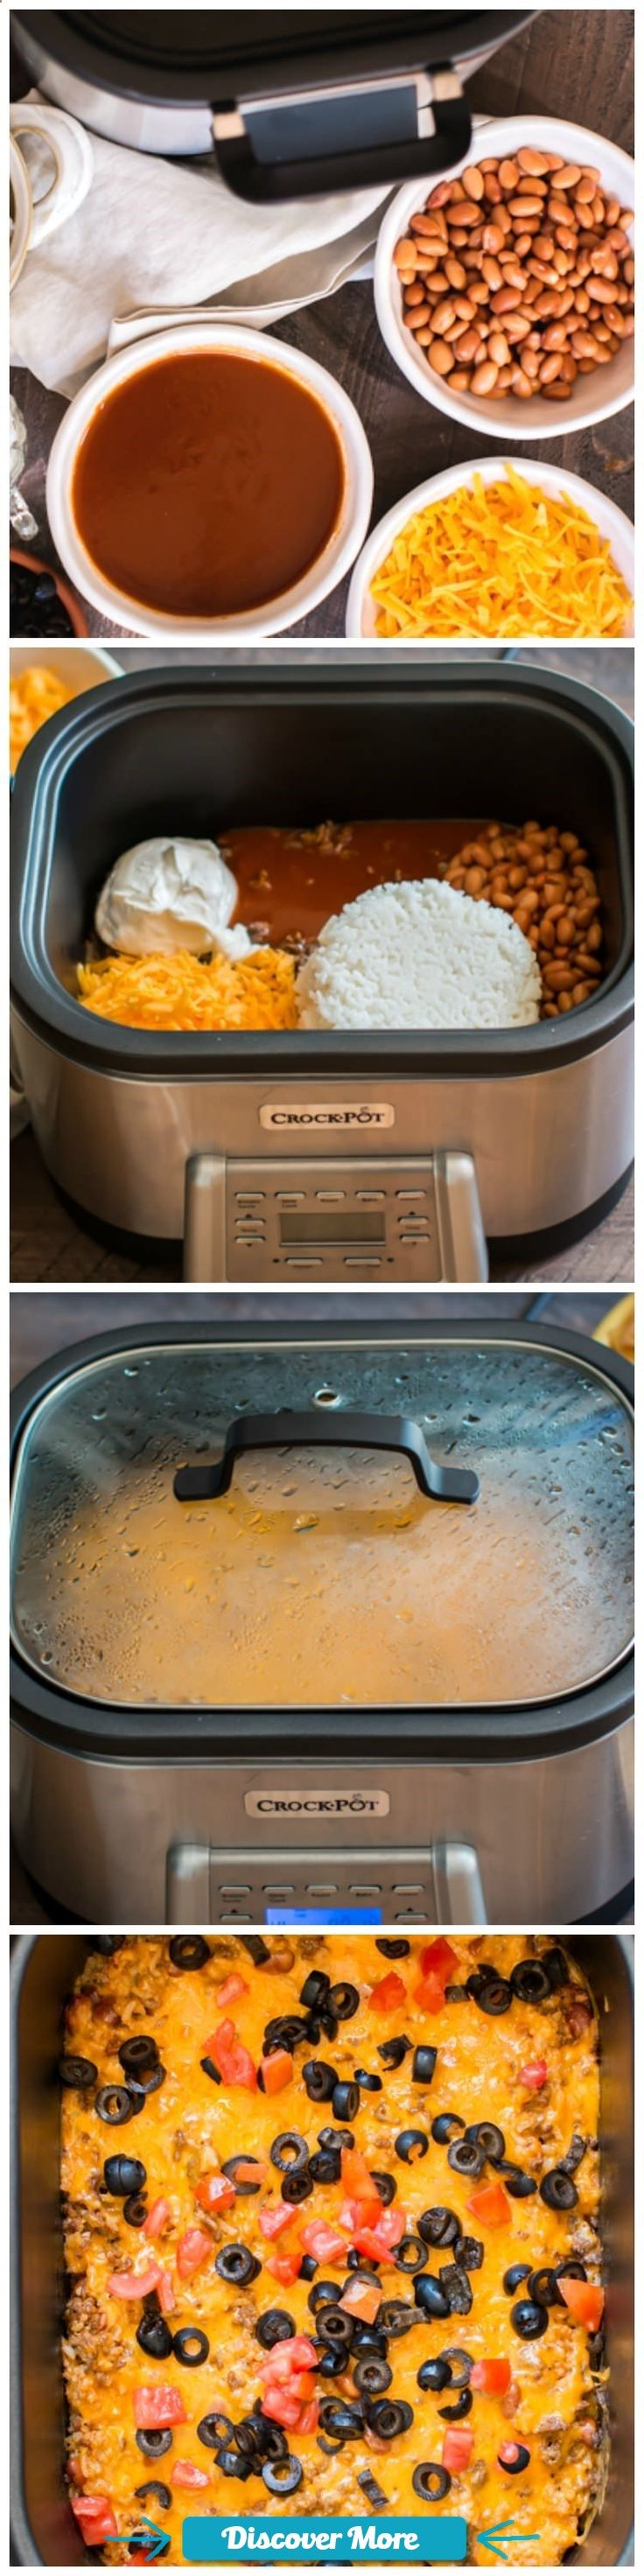 Slow Cooker Beef and Rice Enchilada Dip! Pefect for gameday! #sponsored #CrockPotRecipes #slowcooker #slowcook #slowcookerrecipes #slowcookerchicken